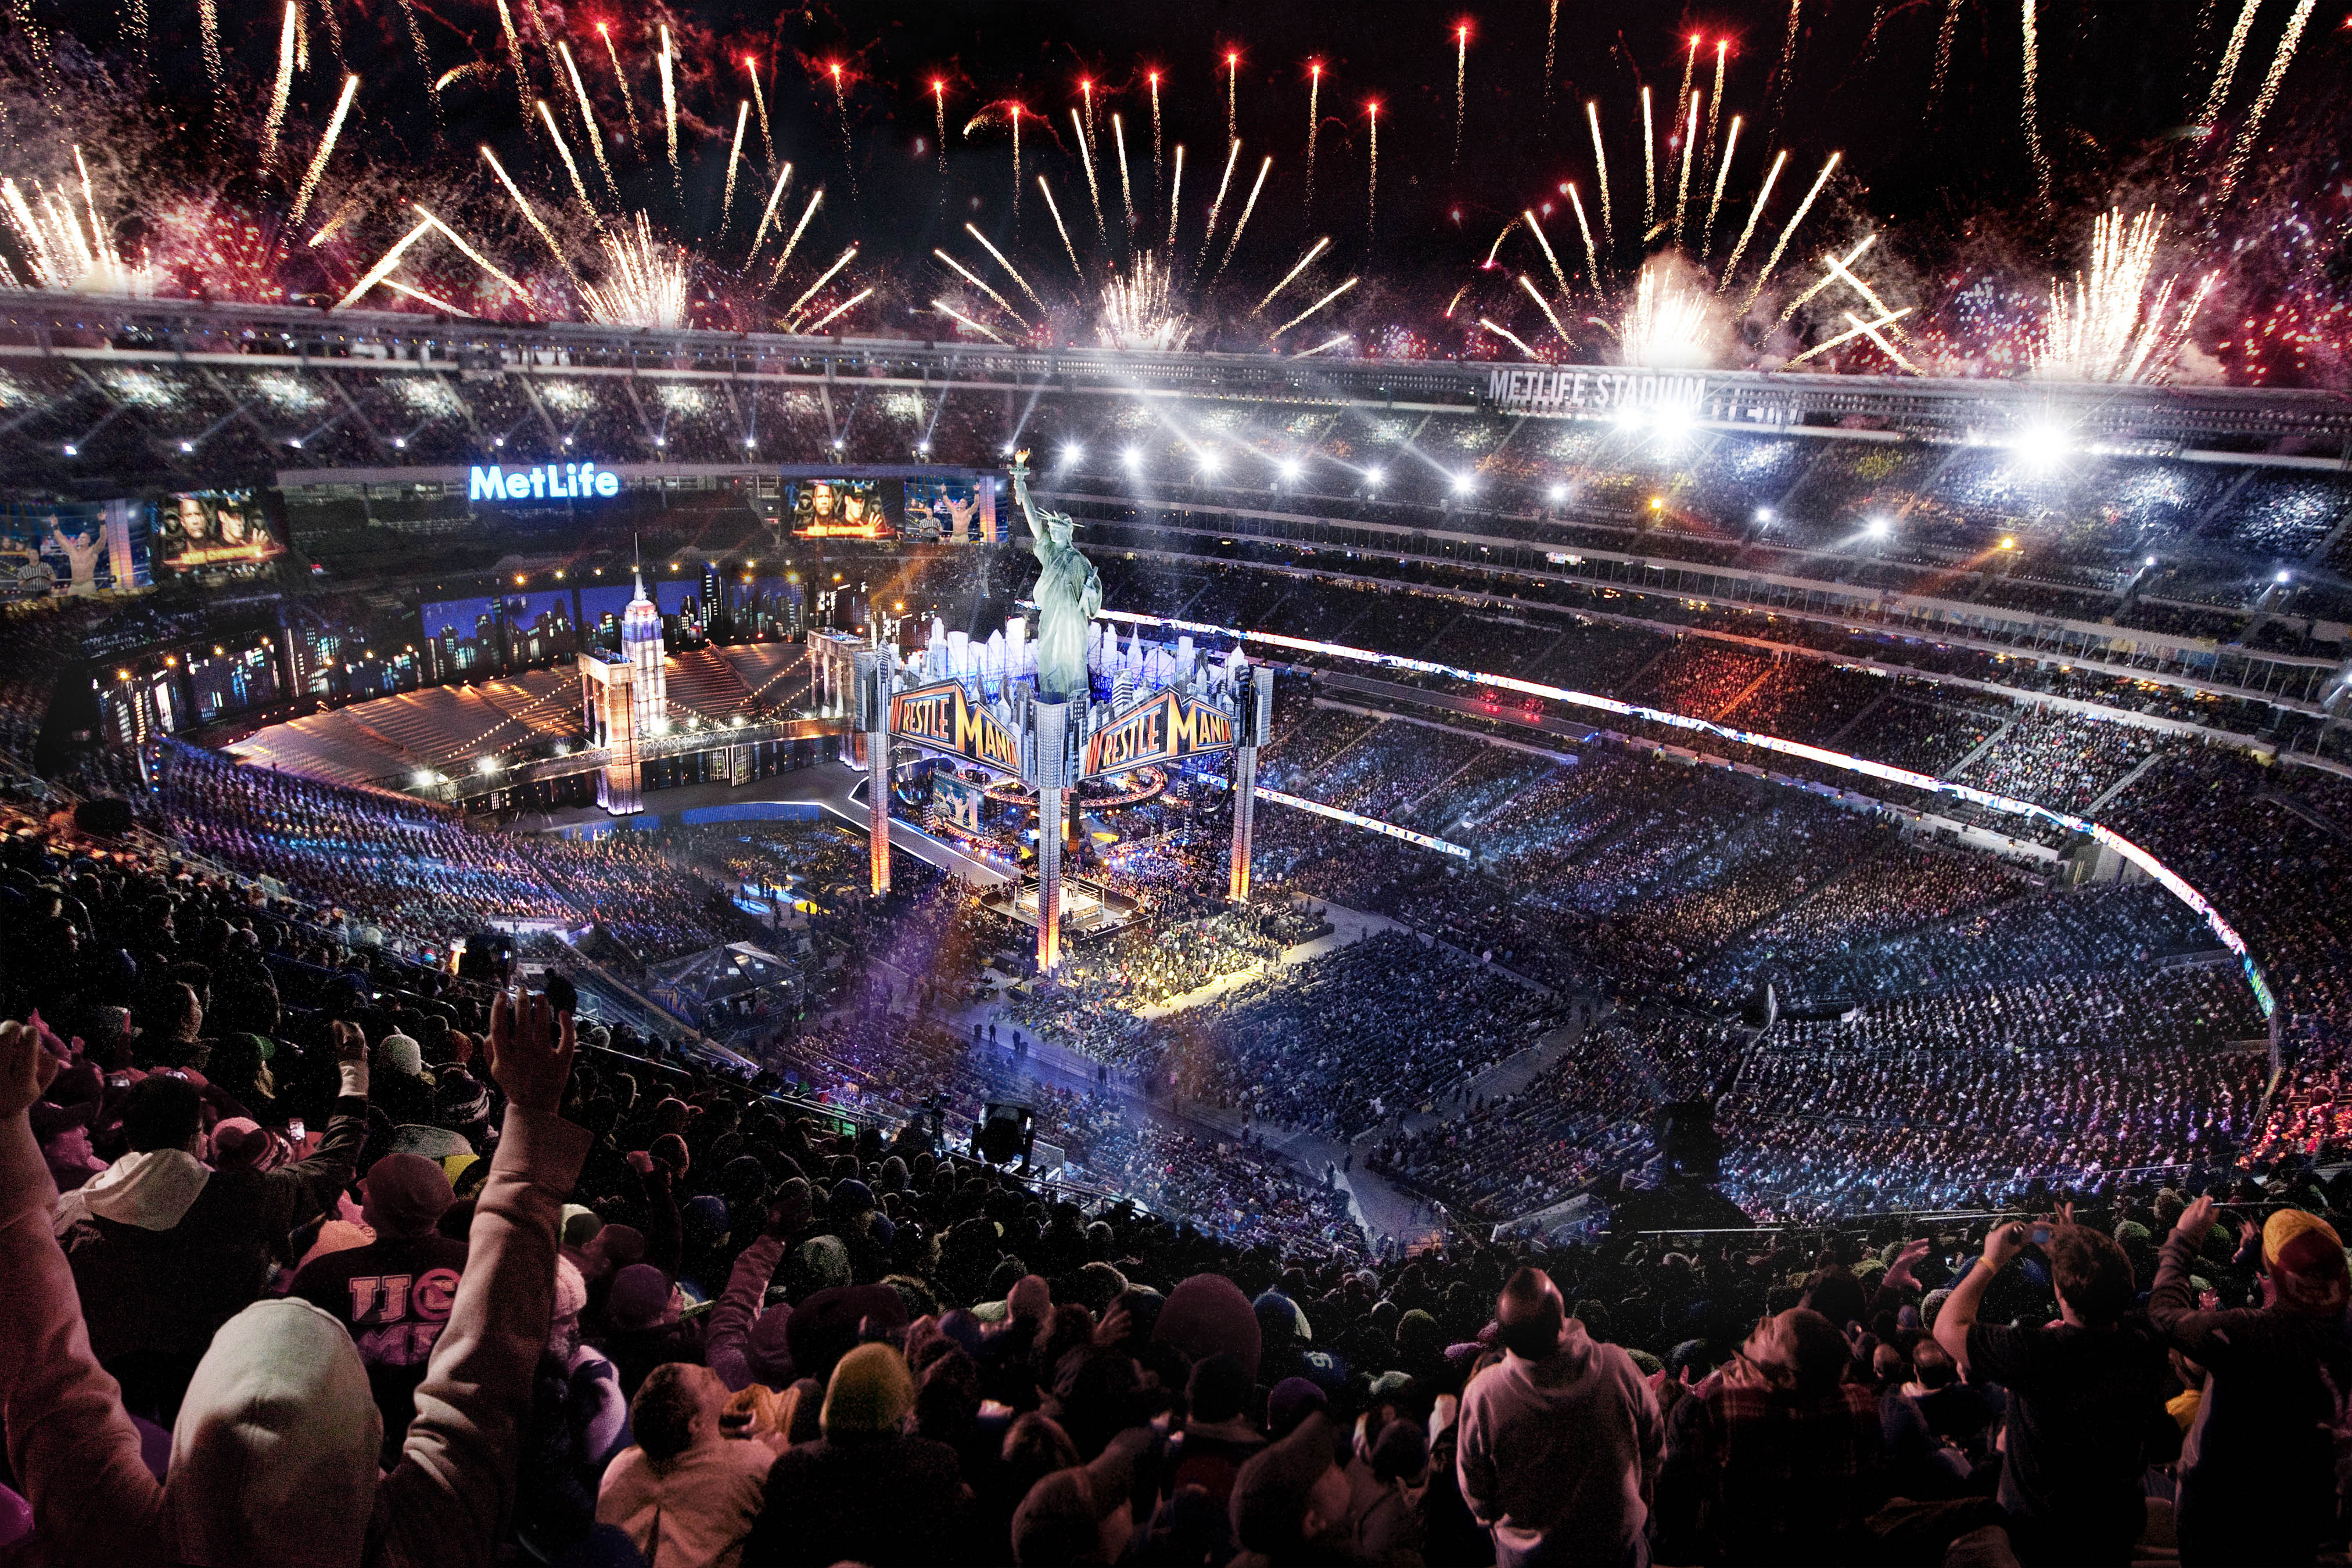 80,676 fans from all 50 states and 34 countries converged on MetLife Stadium for WrestleMania 29 on Sunday, April 7, 2013 (Photo: Business Wire)